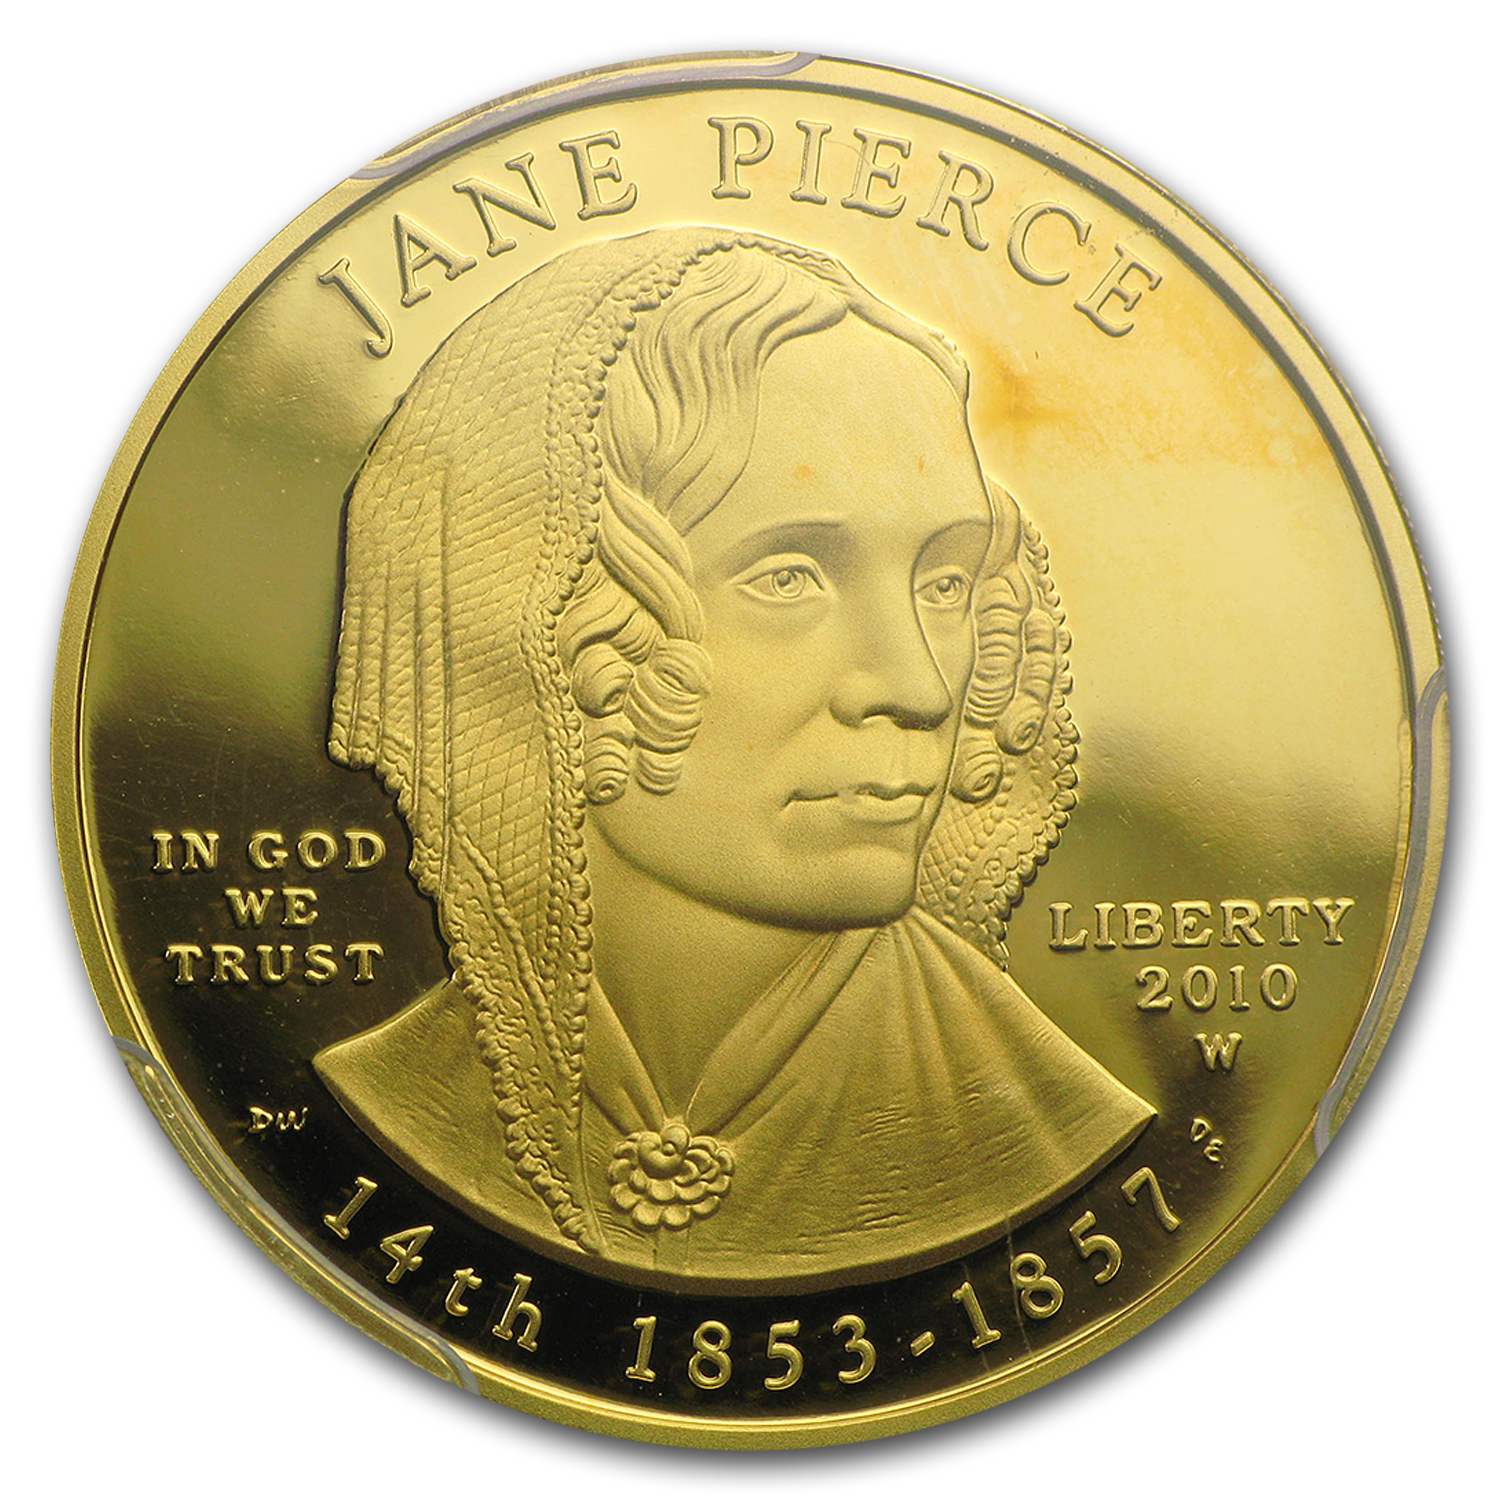 2010-W 1/2 oz Proof Gold Jane Pierce PR-69 PCGS